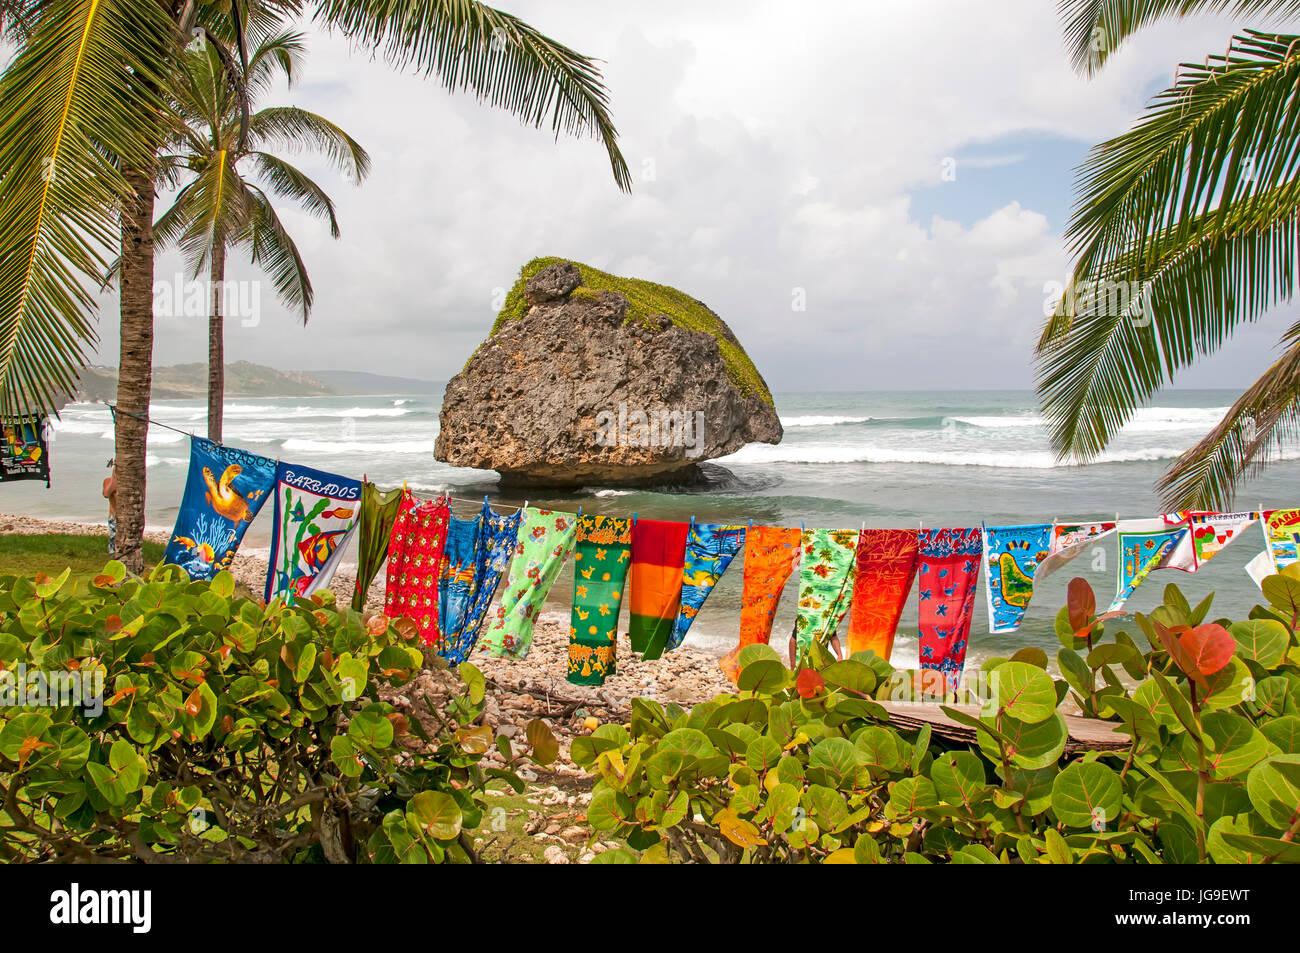 Bathsheba Barbados dramatic boulder on deserted beach with colorful clothes on clothesline blowing in wind. - Stock Image